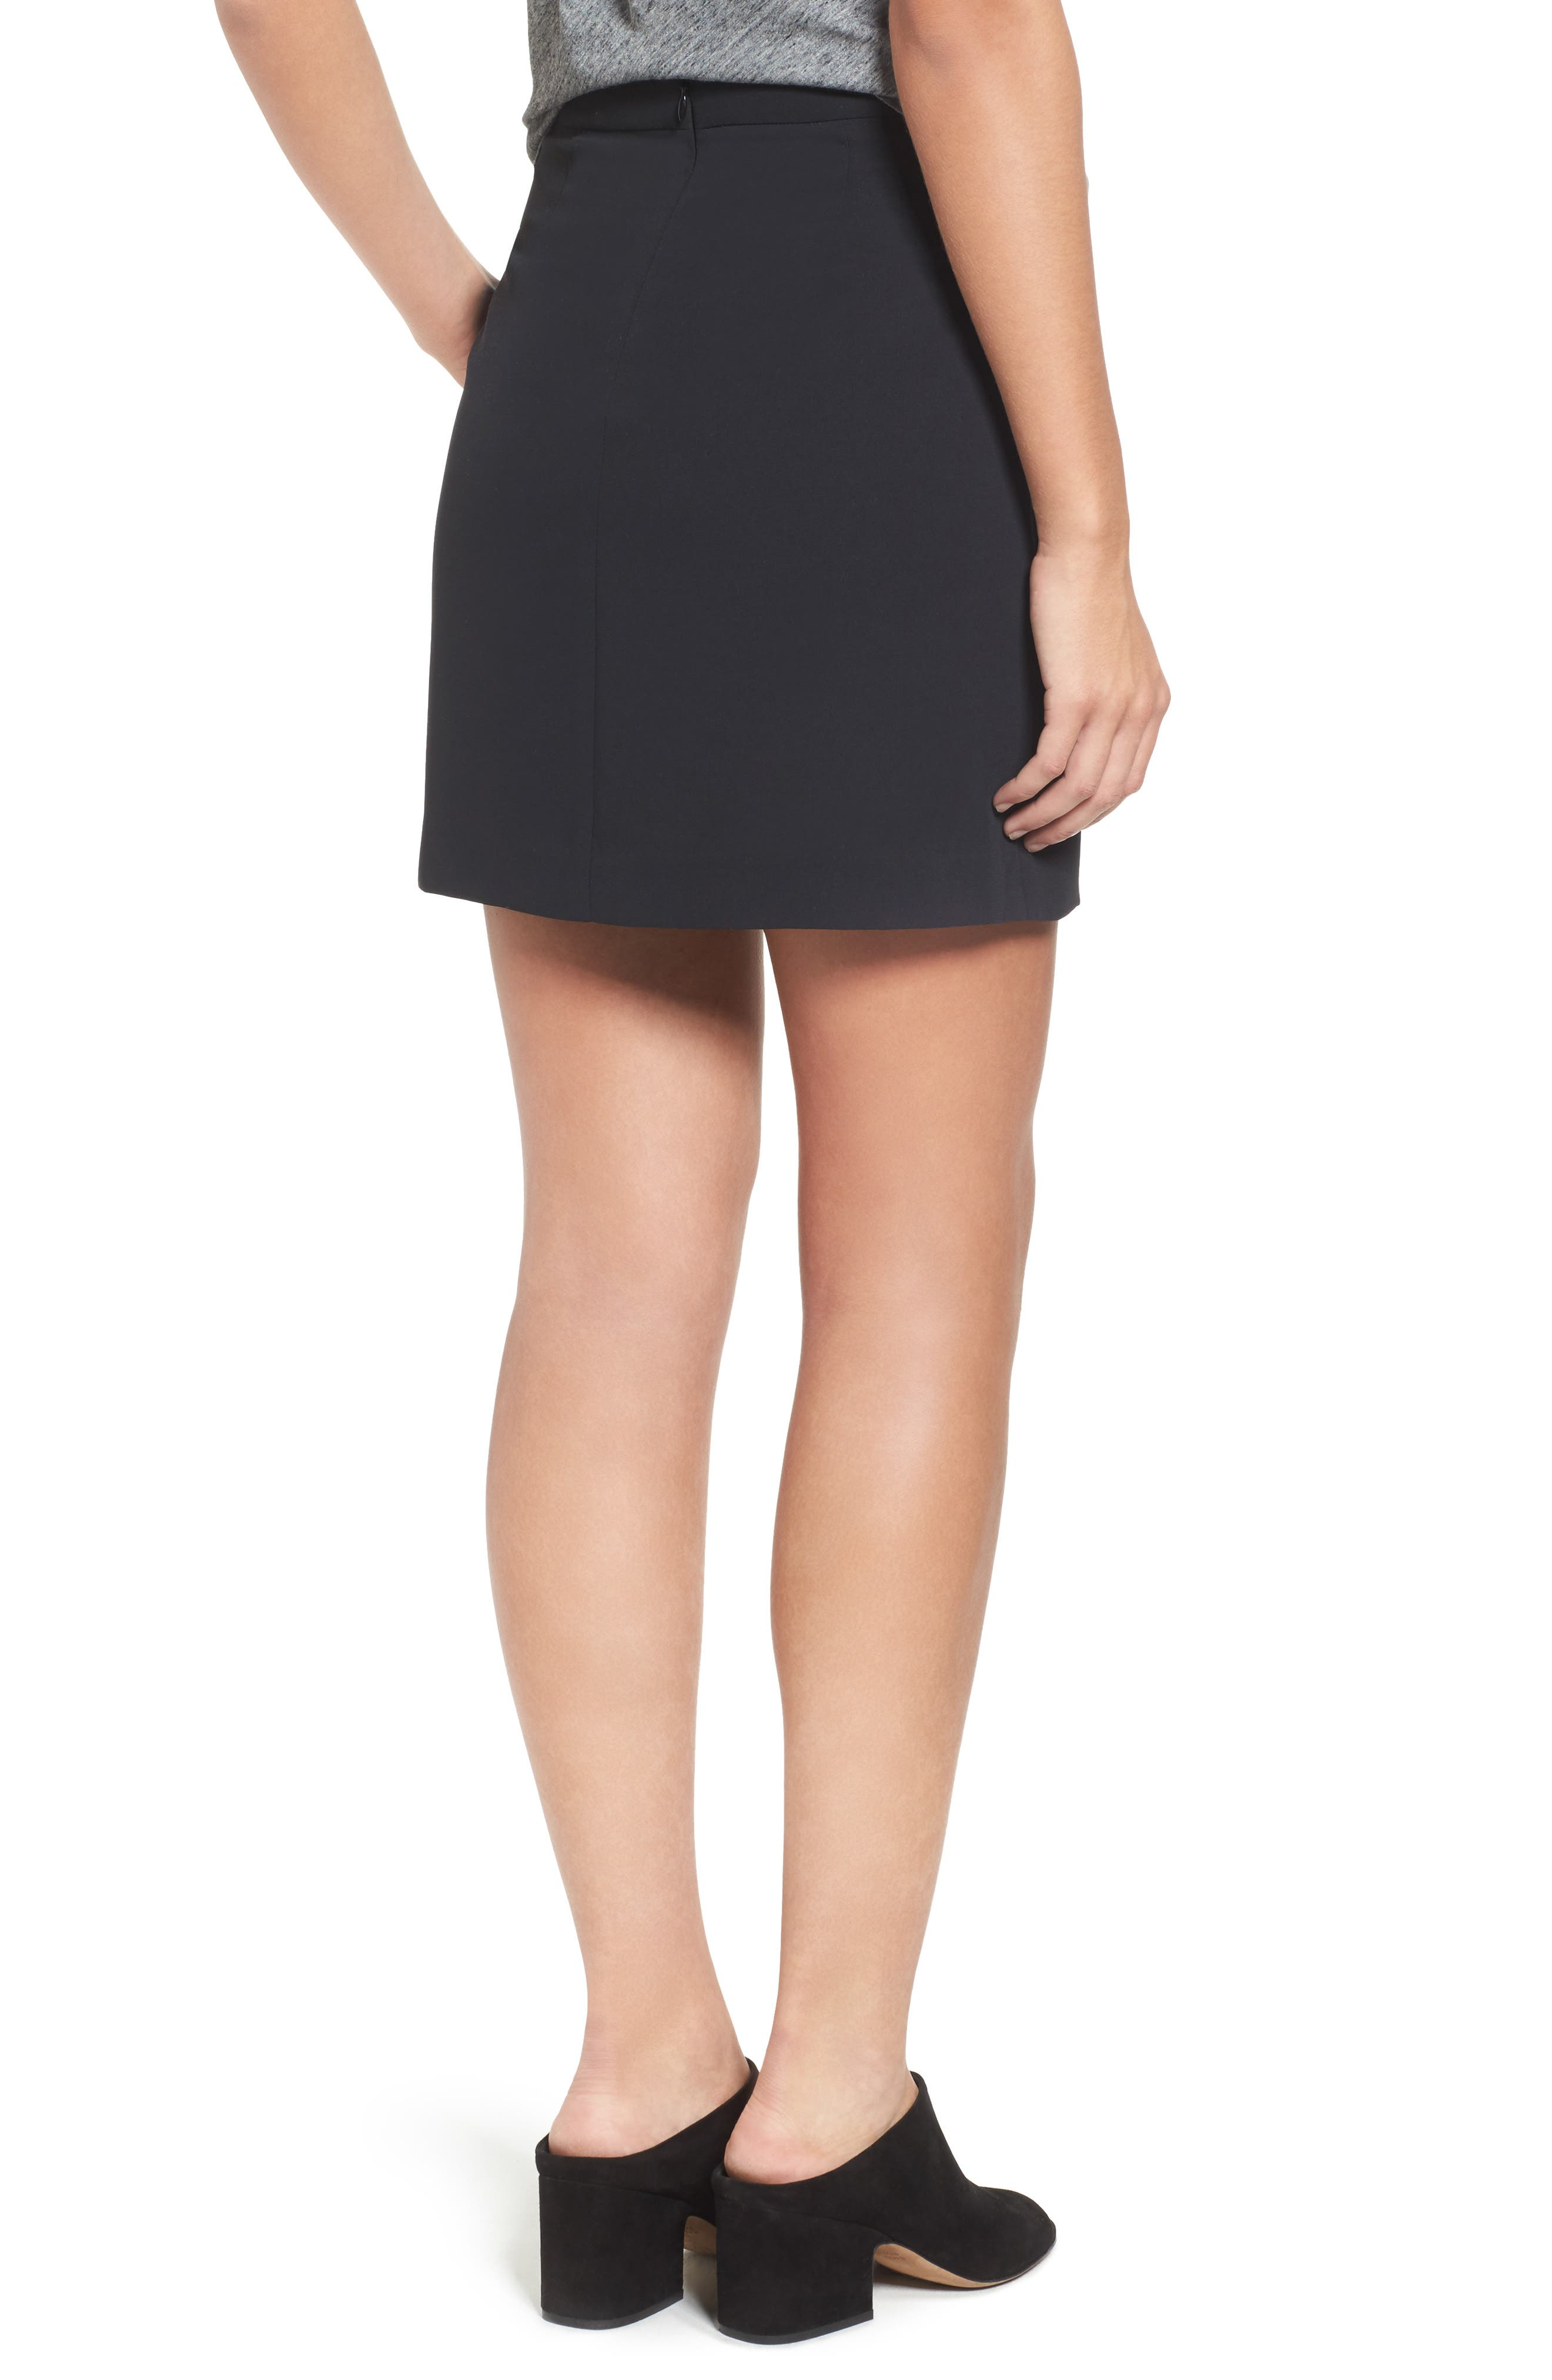 MADEWELL,                             Lace-Up Skirt,                             Alternate thumbnail 2, color,                             001